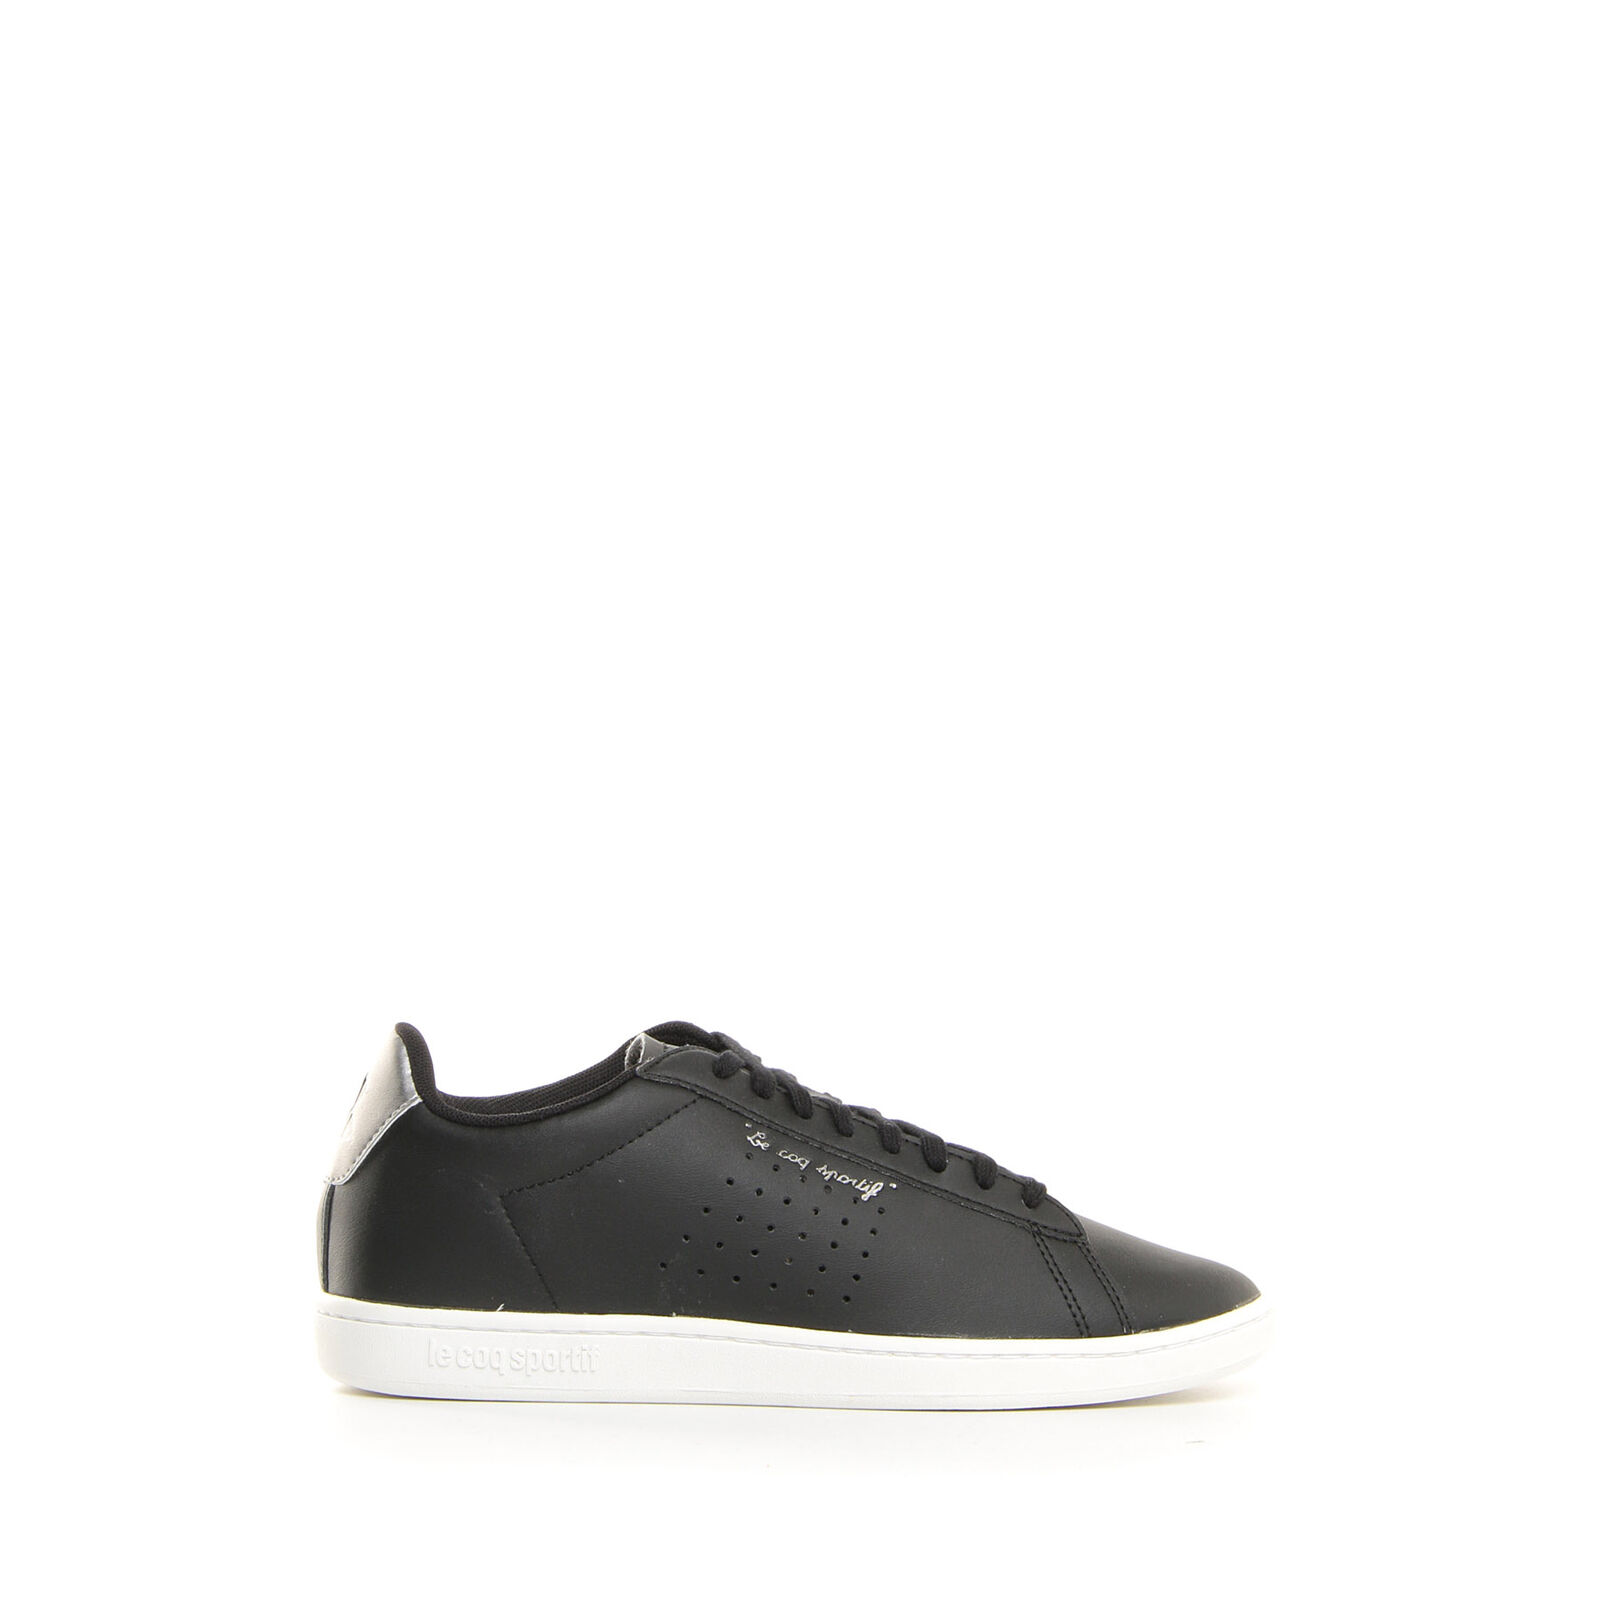 LE COQ SPORTIF COURTSET W SPORT chaussures FREE TIME femmes 1821581